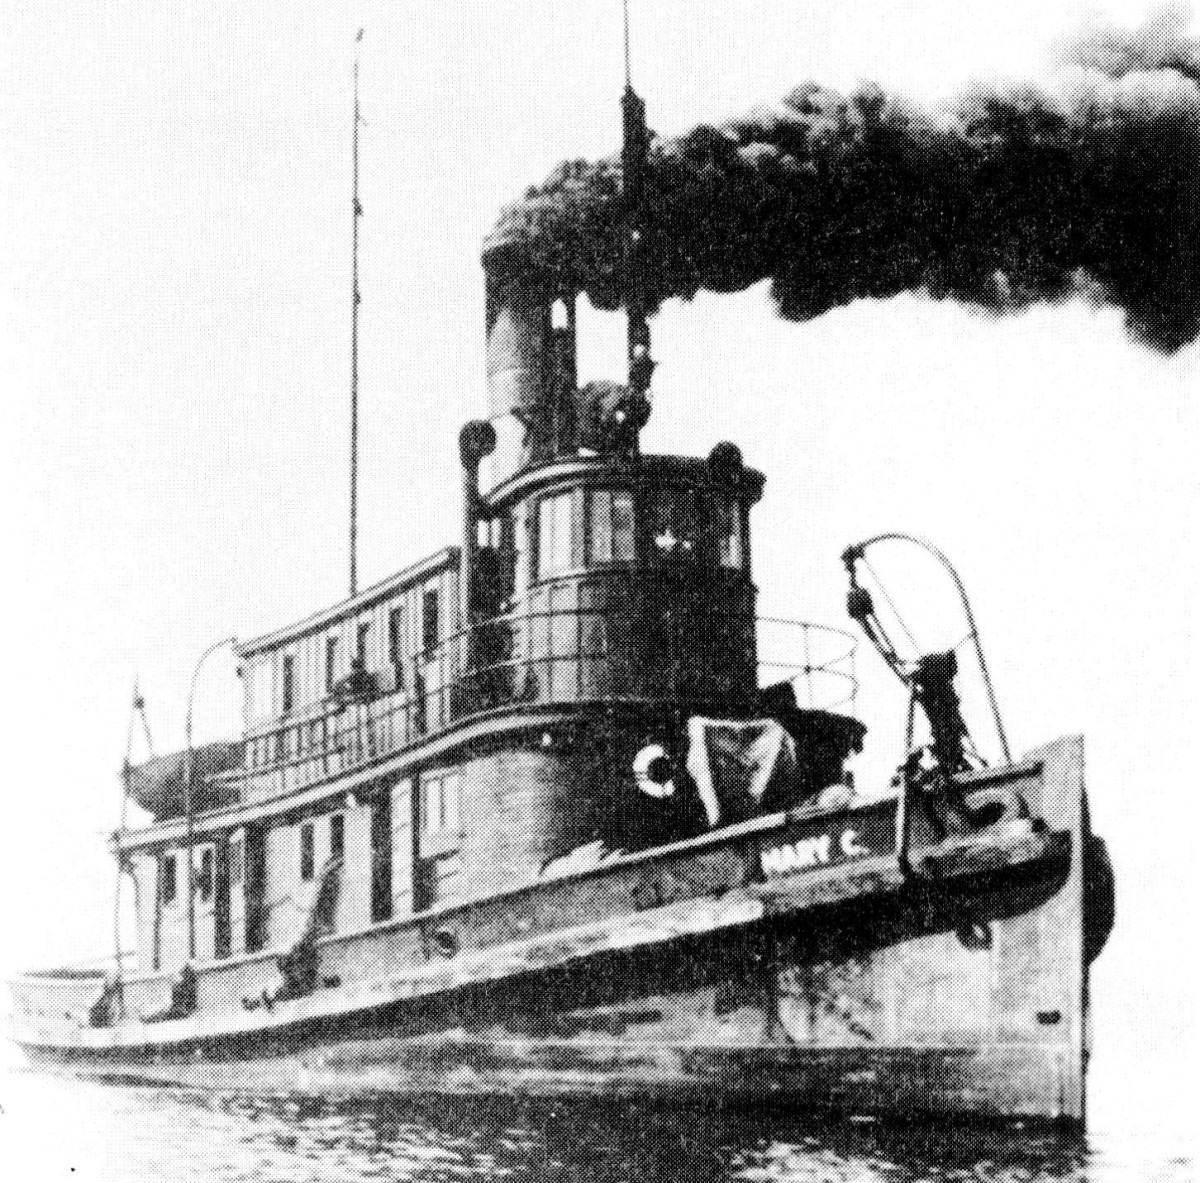 Henry Cayou named his steam tug the Mary C in honor of his wife. At 103 feet, it was a sizable tug for its time. Islanders in the Pacific Northwest want to name a waterway for Cayou, who died in 1959. (Photo courtesy of the Karen Jones-Lamb family)